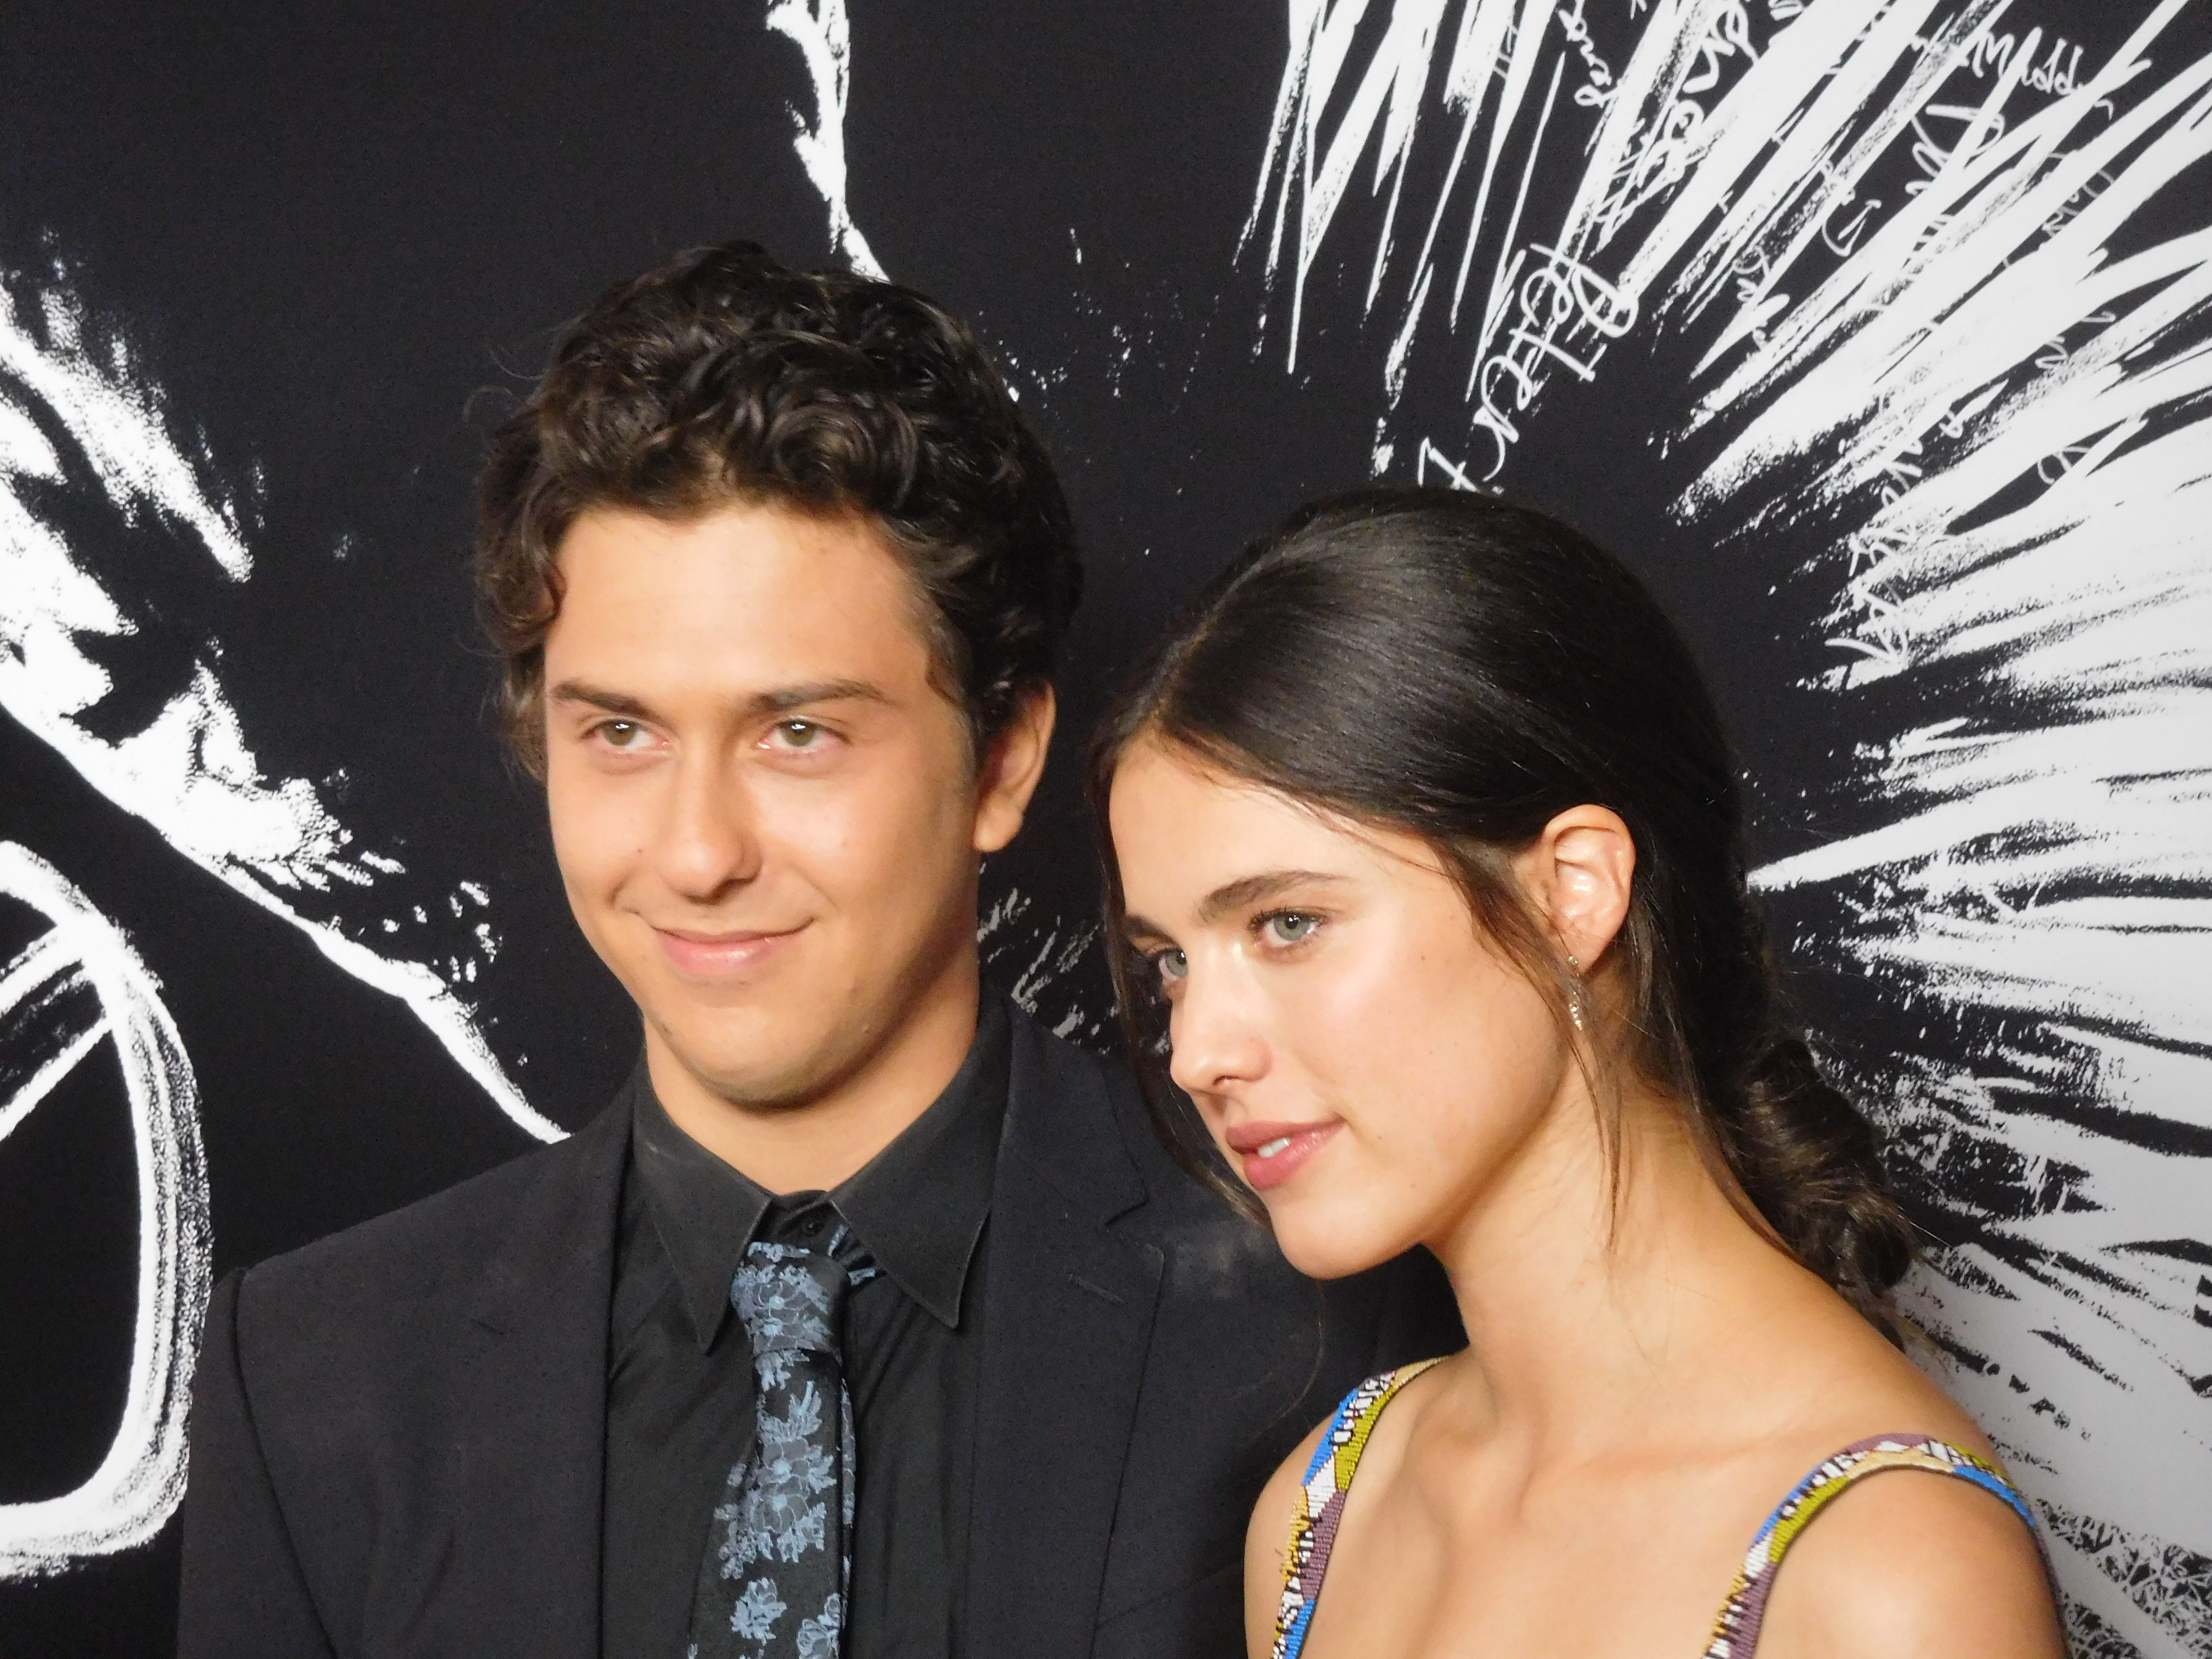 749e579b35c Nat wolff margaret qualley attend premiere of netflixs death jpg 4608x3456 Nat  wolff margaret qualley